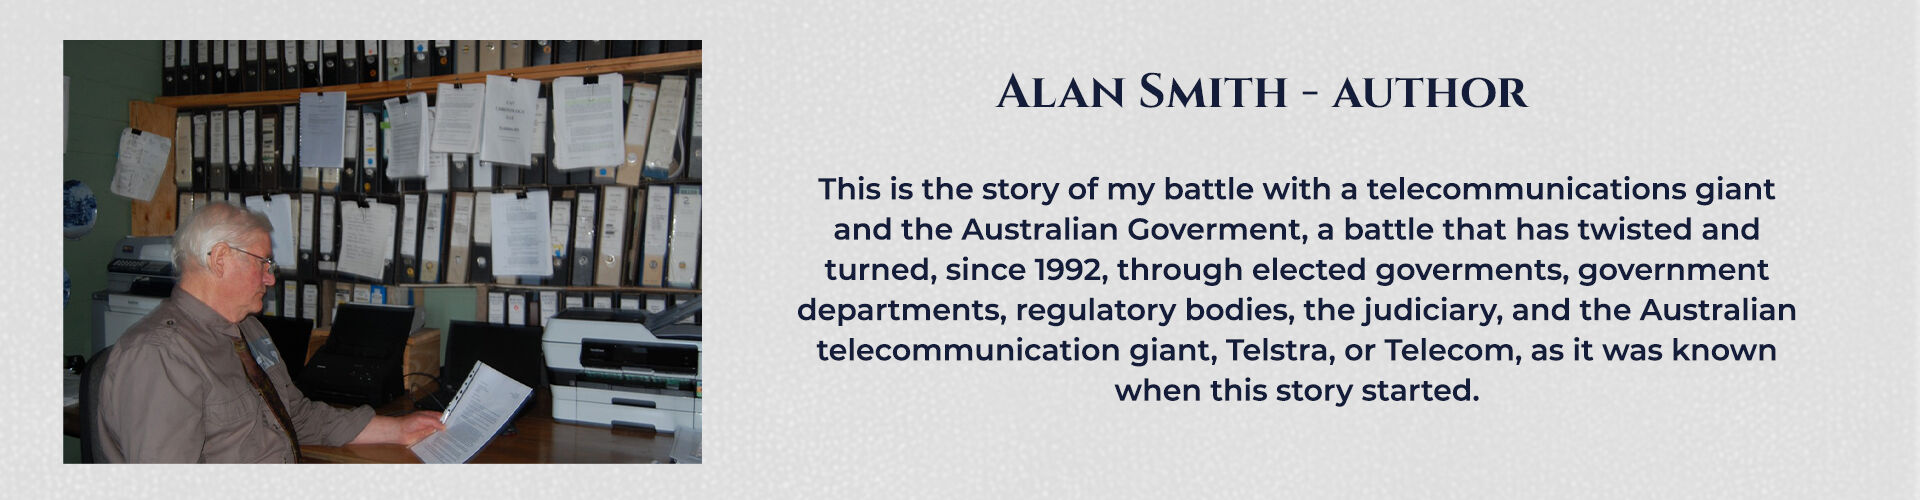 Absent Justice - My Story - Alan Smith